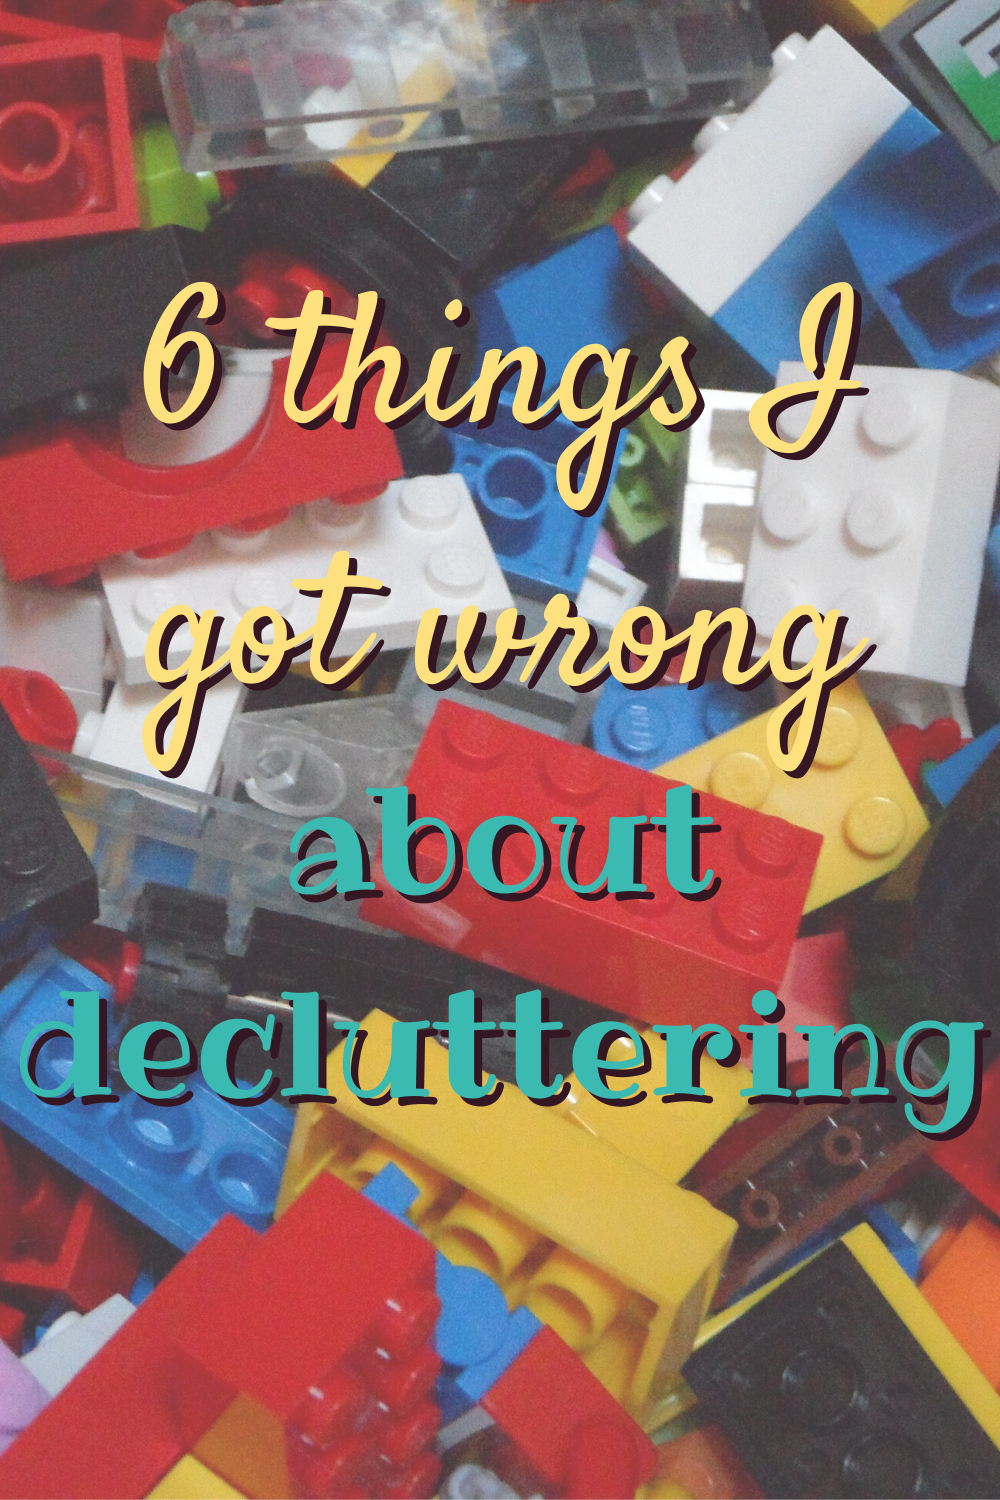 6 things I got wrong about decluttering.